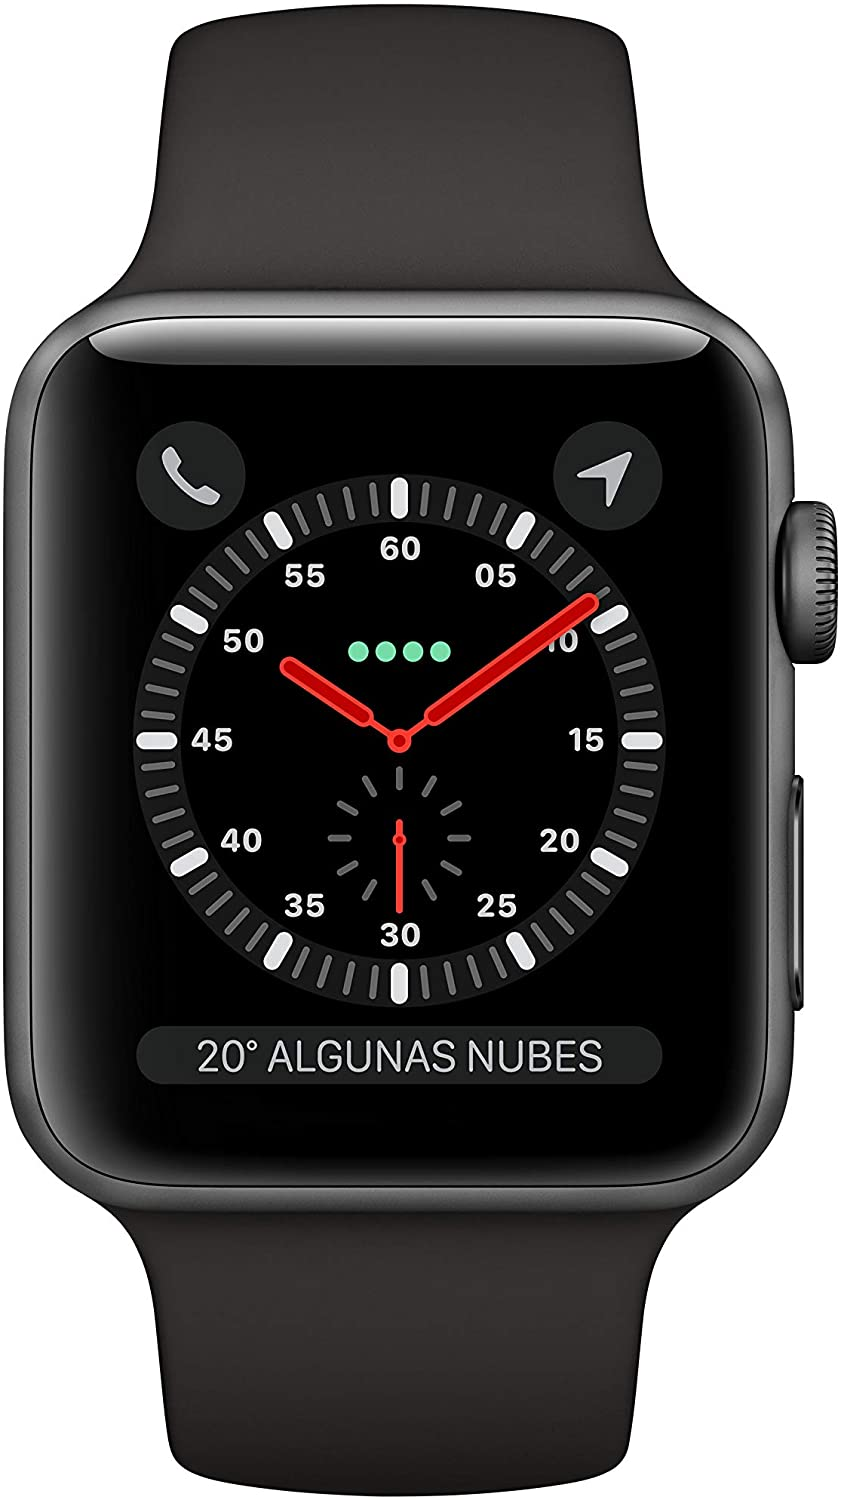 APPLE WATCH SERIE 3 GPS/CELL 42MM GRIS NEGRO